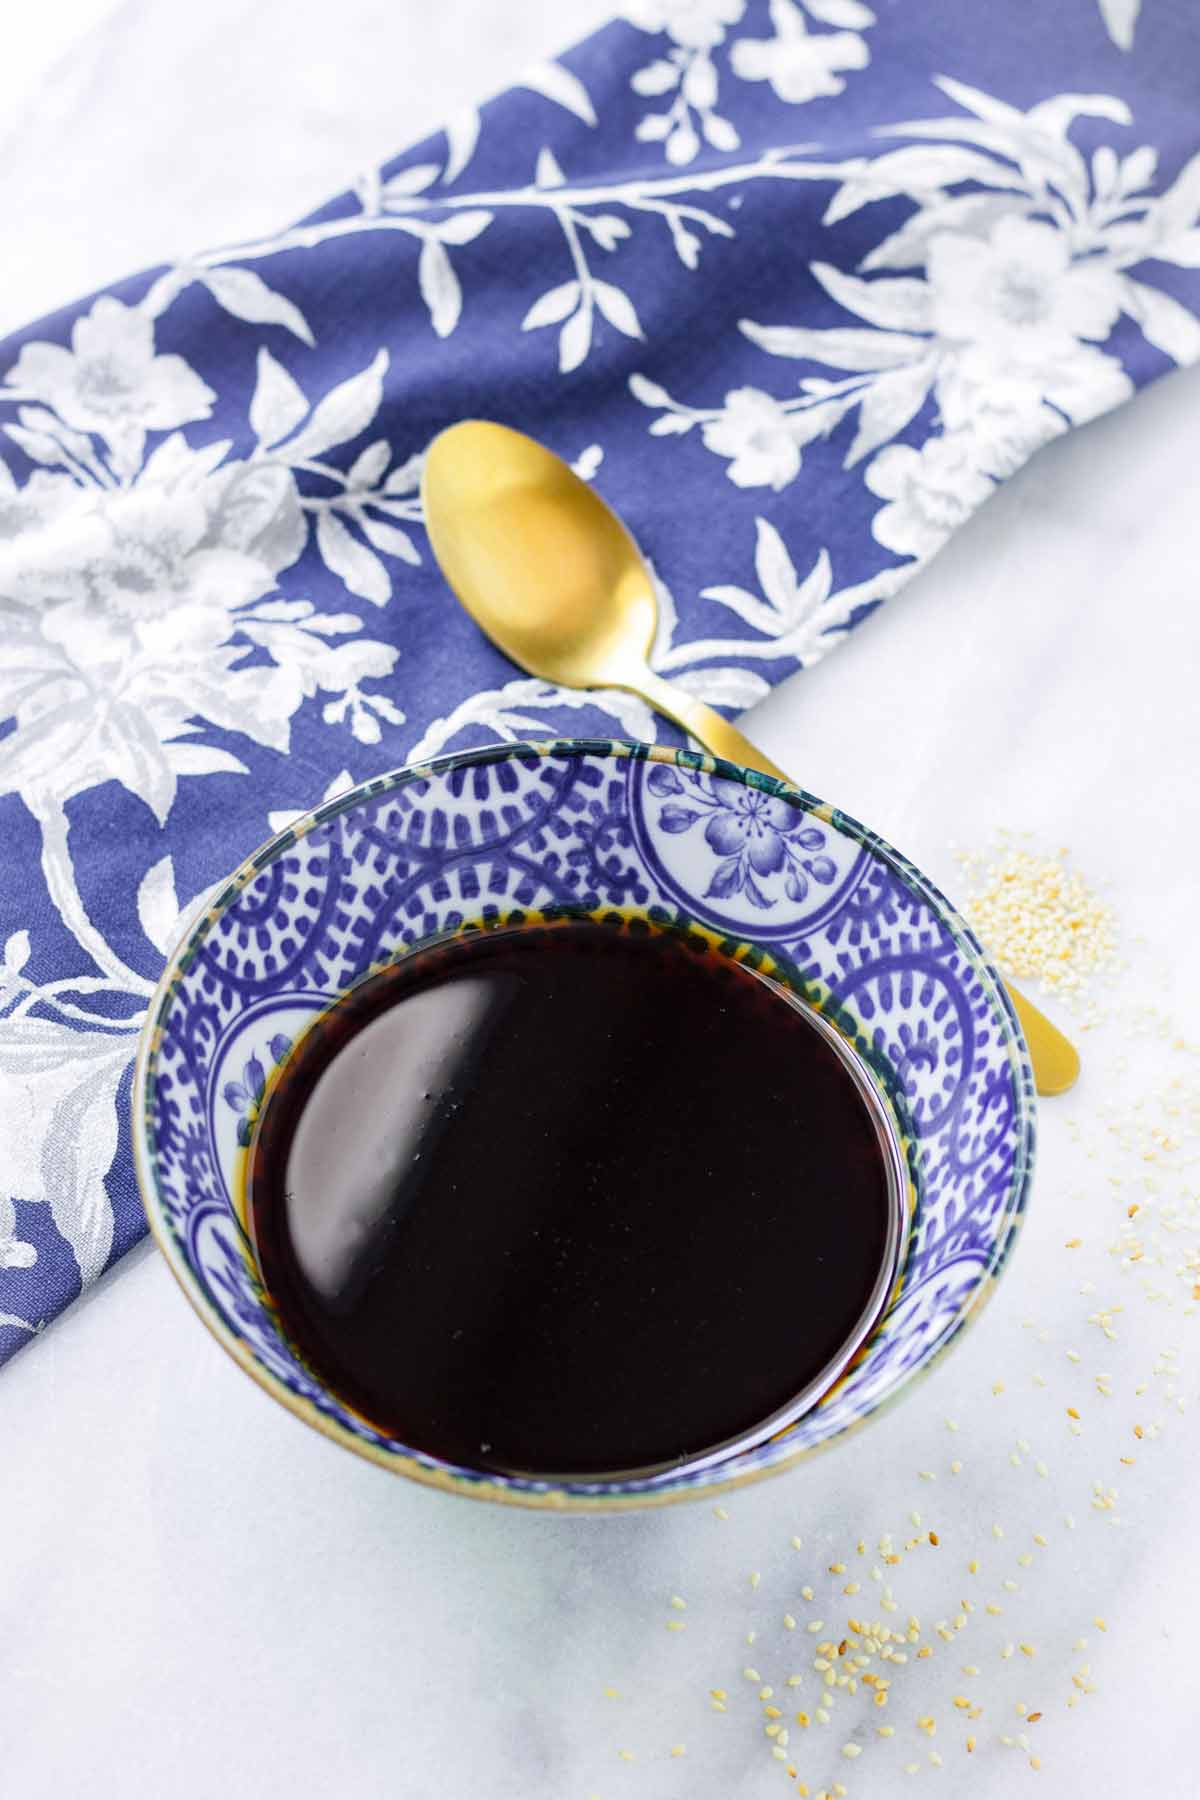 homemade teriyaki sauce in a blue bowl next to spoon and floral napkin